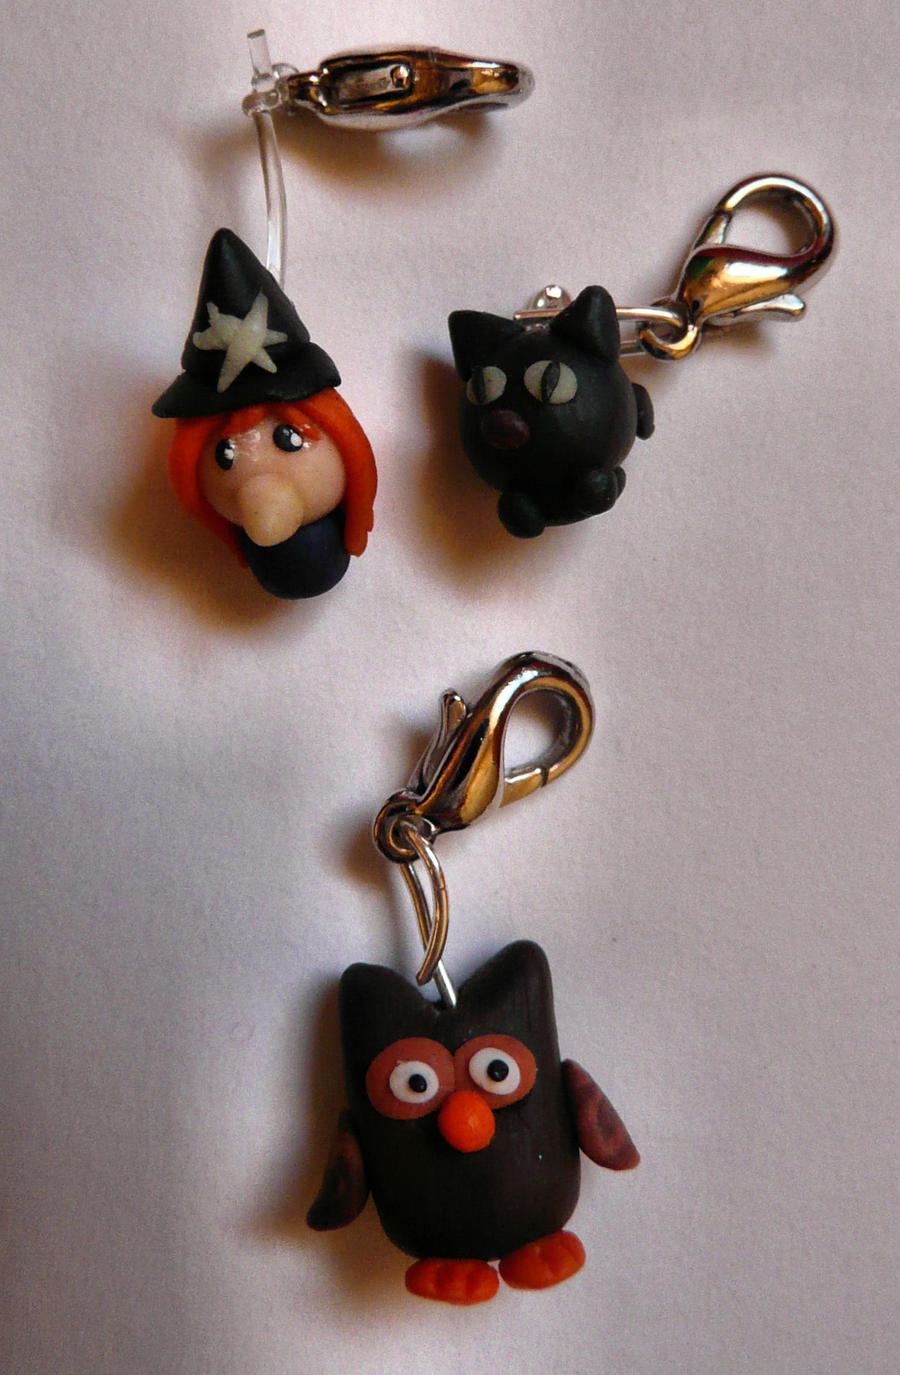 Art I Cake Halloween Charms : Halloween charms by ugnip on DeviantArt